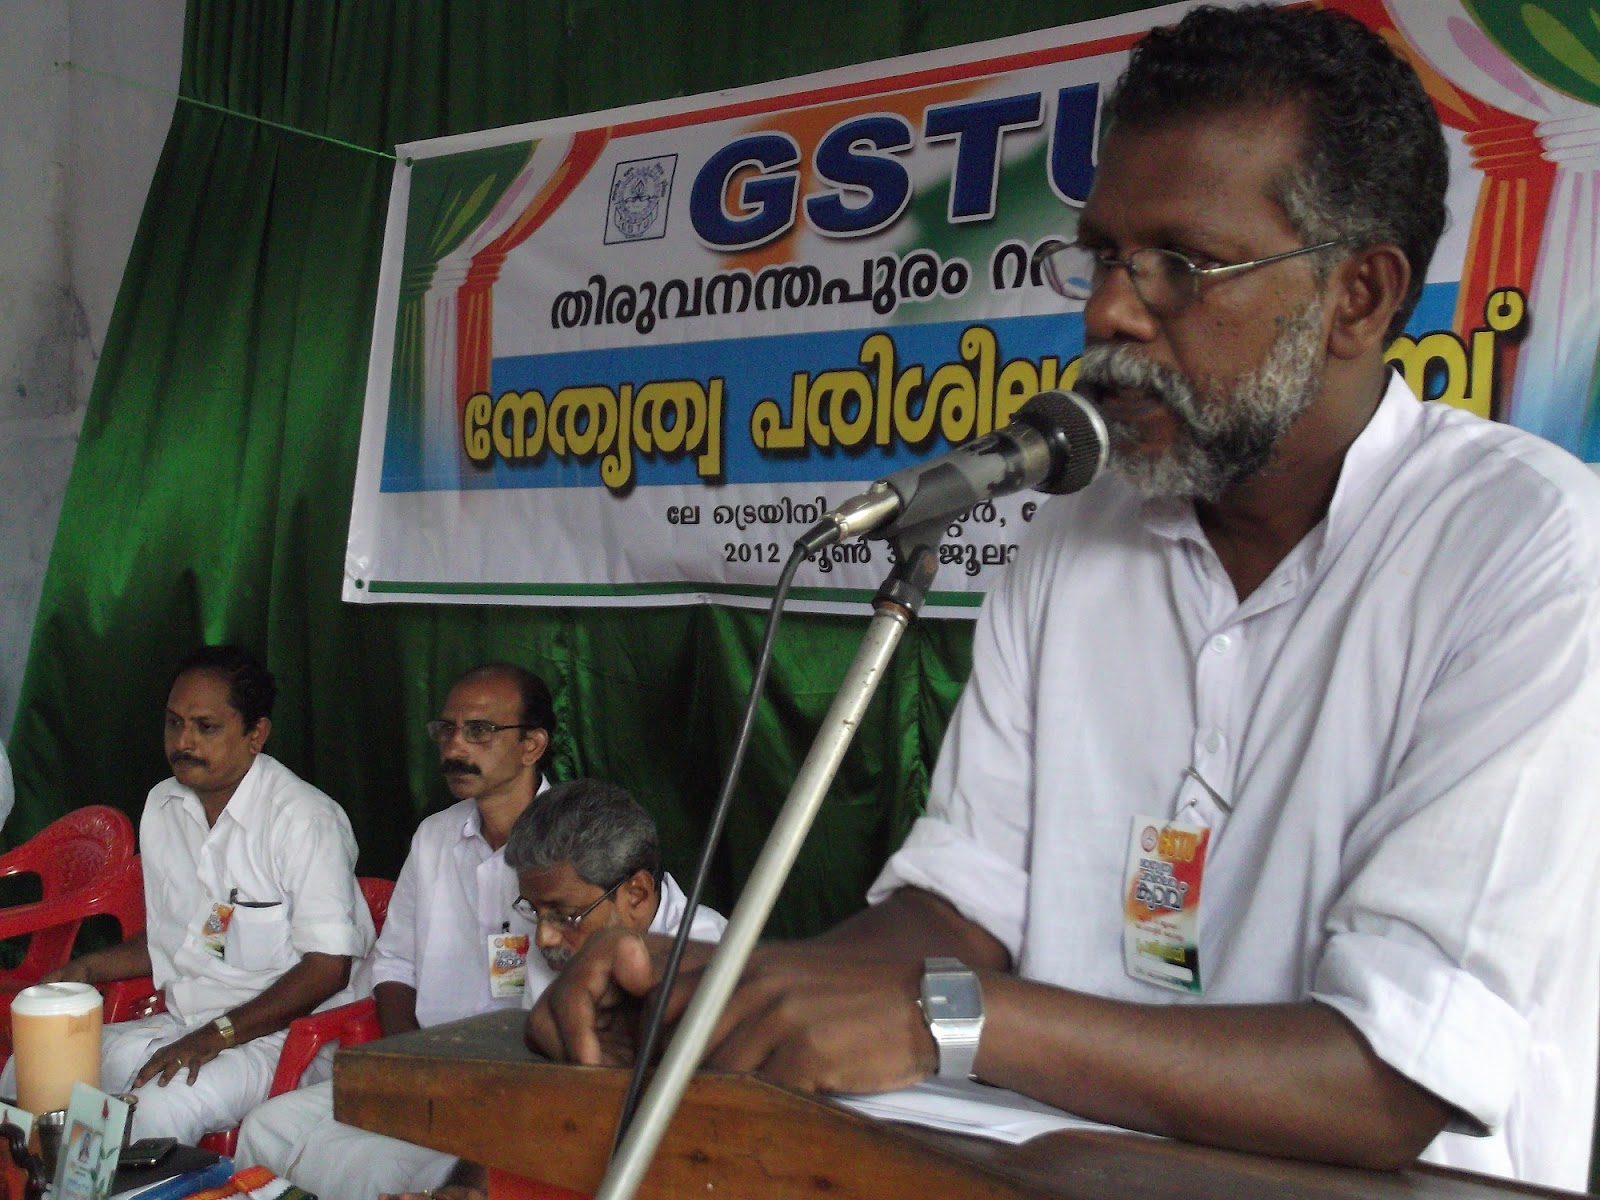 Posted by GSTU attingal at 10:26 AM